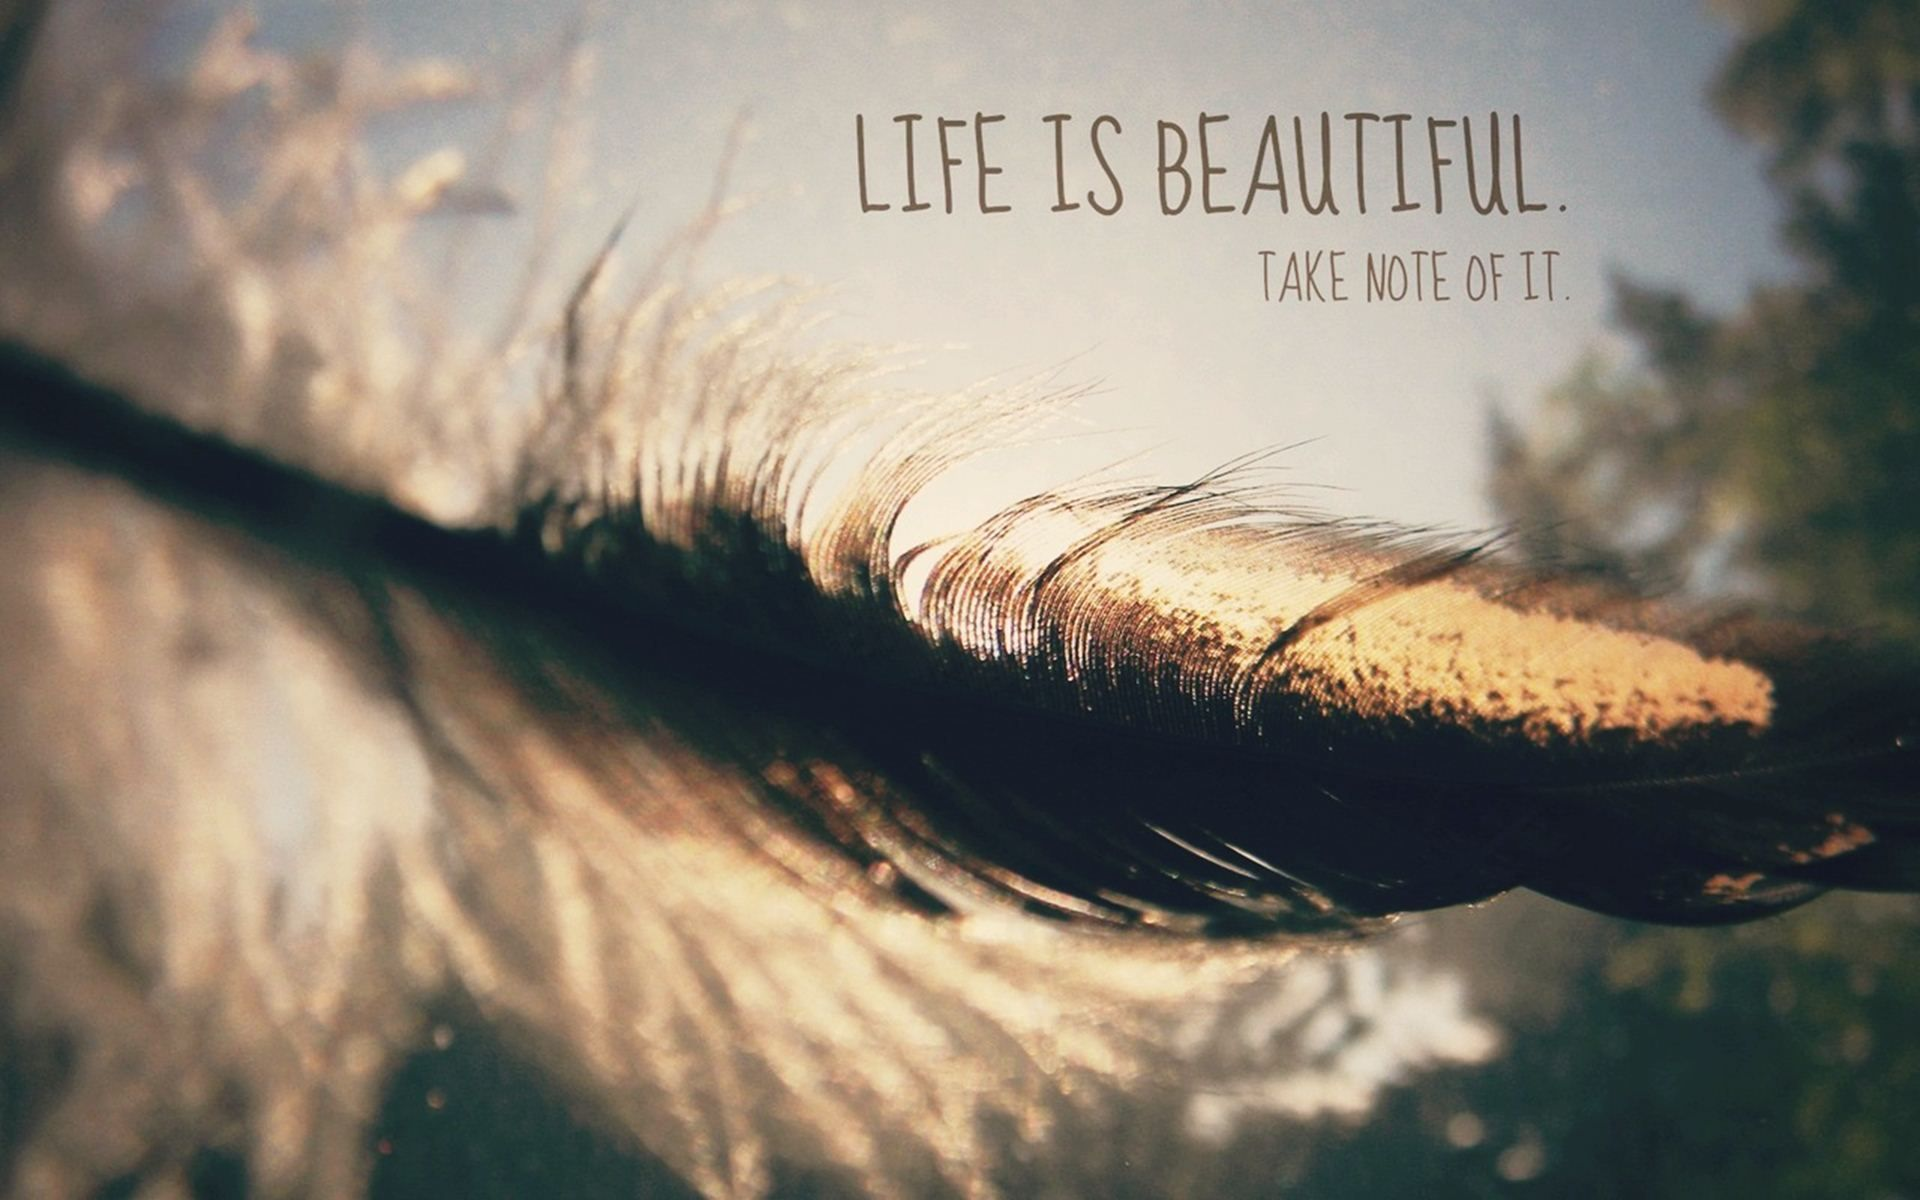 Tumblr Backgrounds Quotes Life Is Beautiful Quotes Picture Quotes Tumblr Beautiful Wallpapers With Quotes